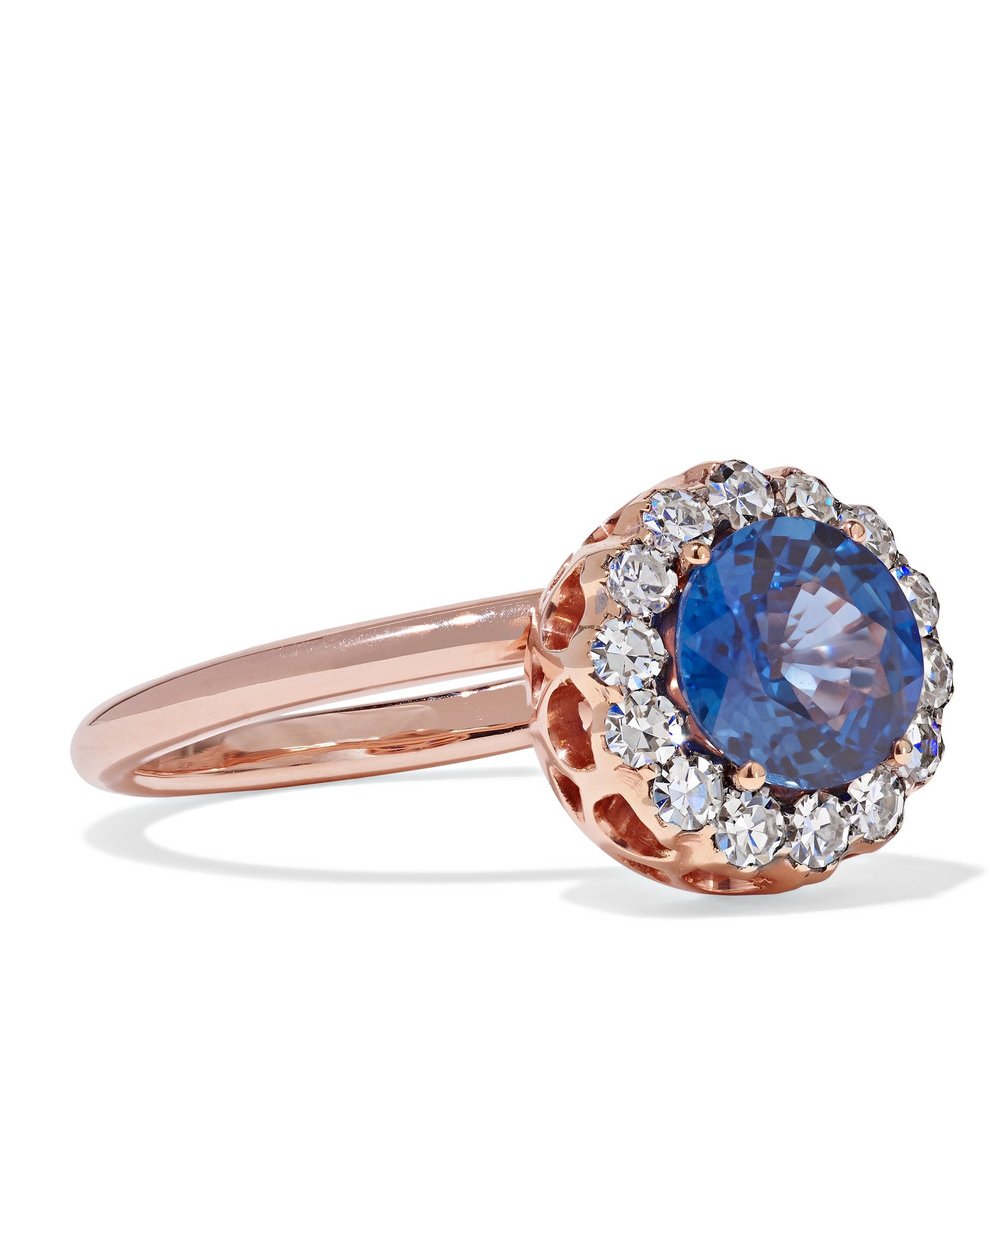 Rose Gold band, Sapphire gem, and Diamond Ring